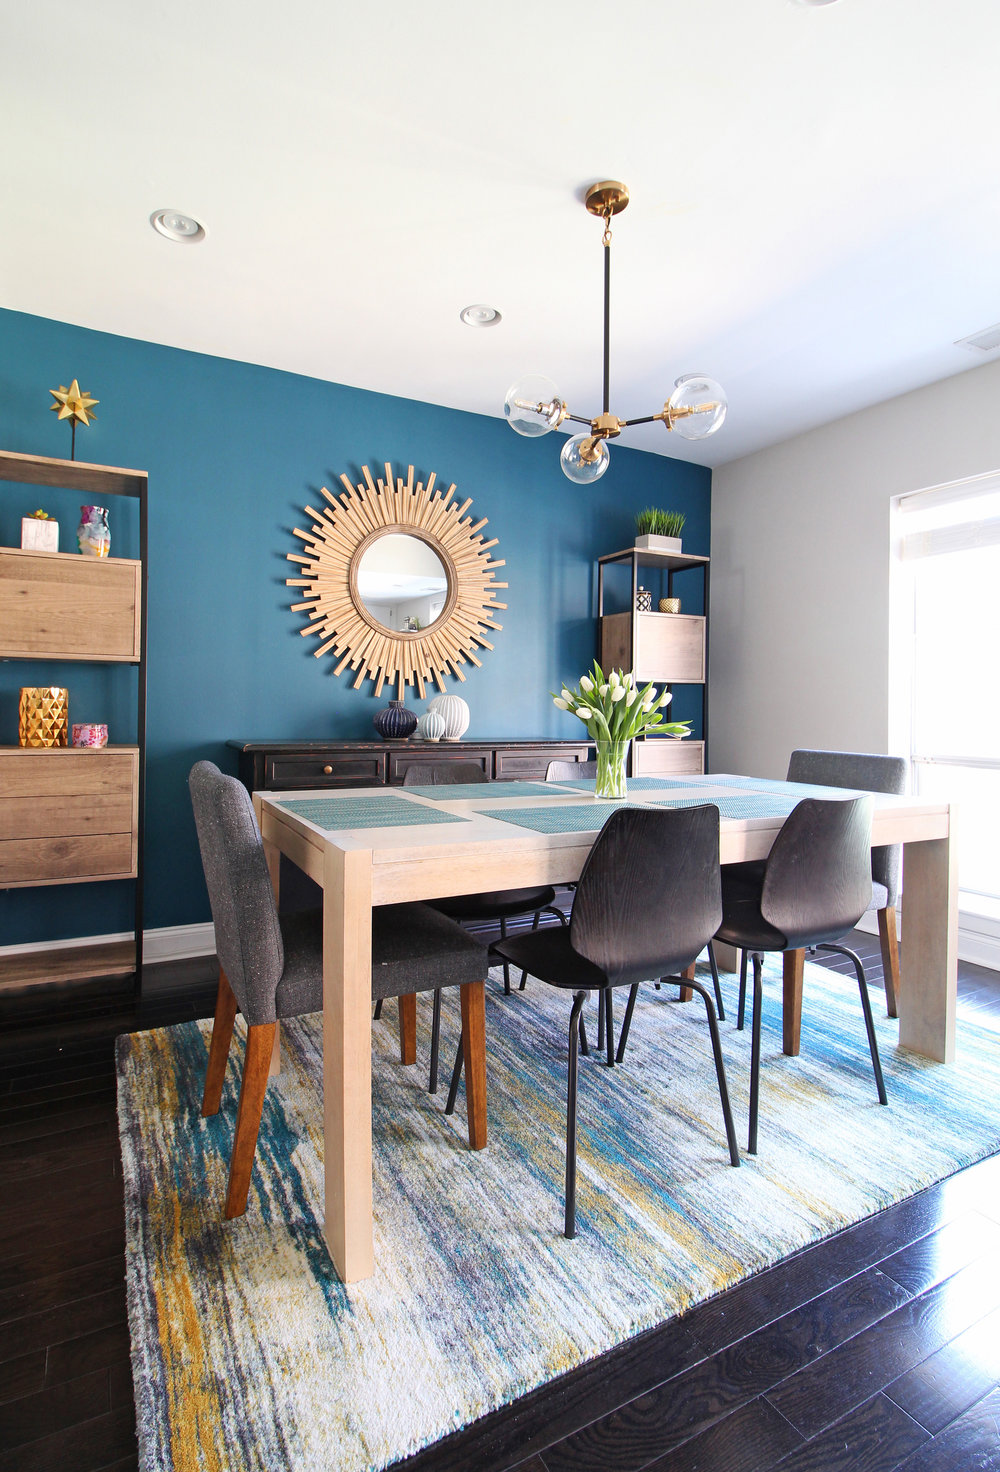 Are you redecorating your home in 2019? Let's chat! My approachable and affordable e-design packages might be just the right fit. Get the design help you need from Mix & Match Design Company's virtual interior design services and turn your home into a space you love! // modern eclectic dining room, modern dining room, bold dining room